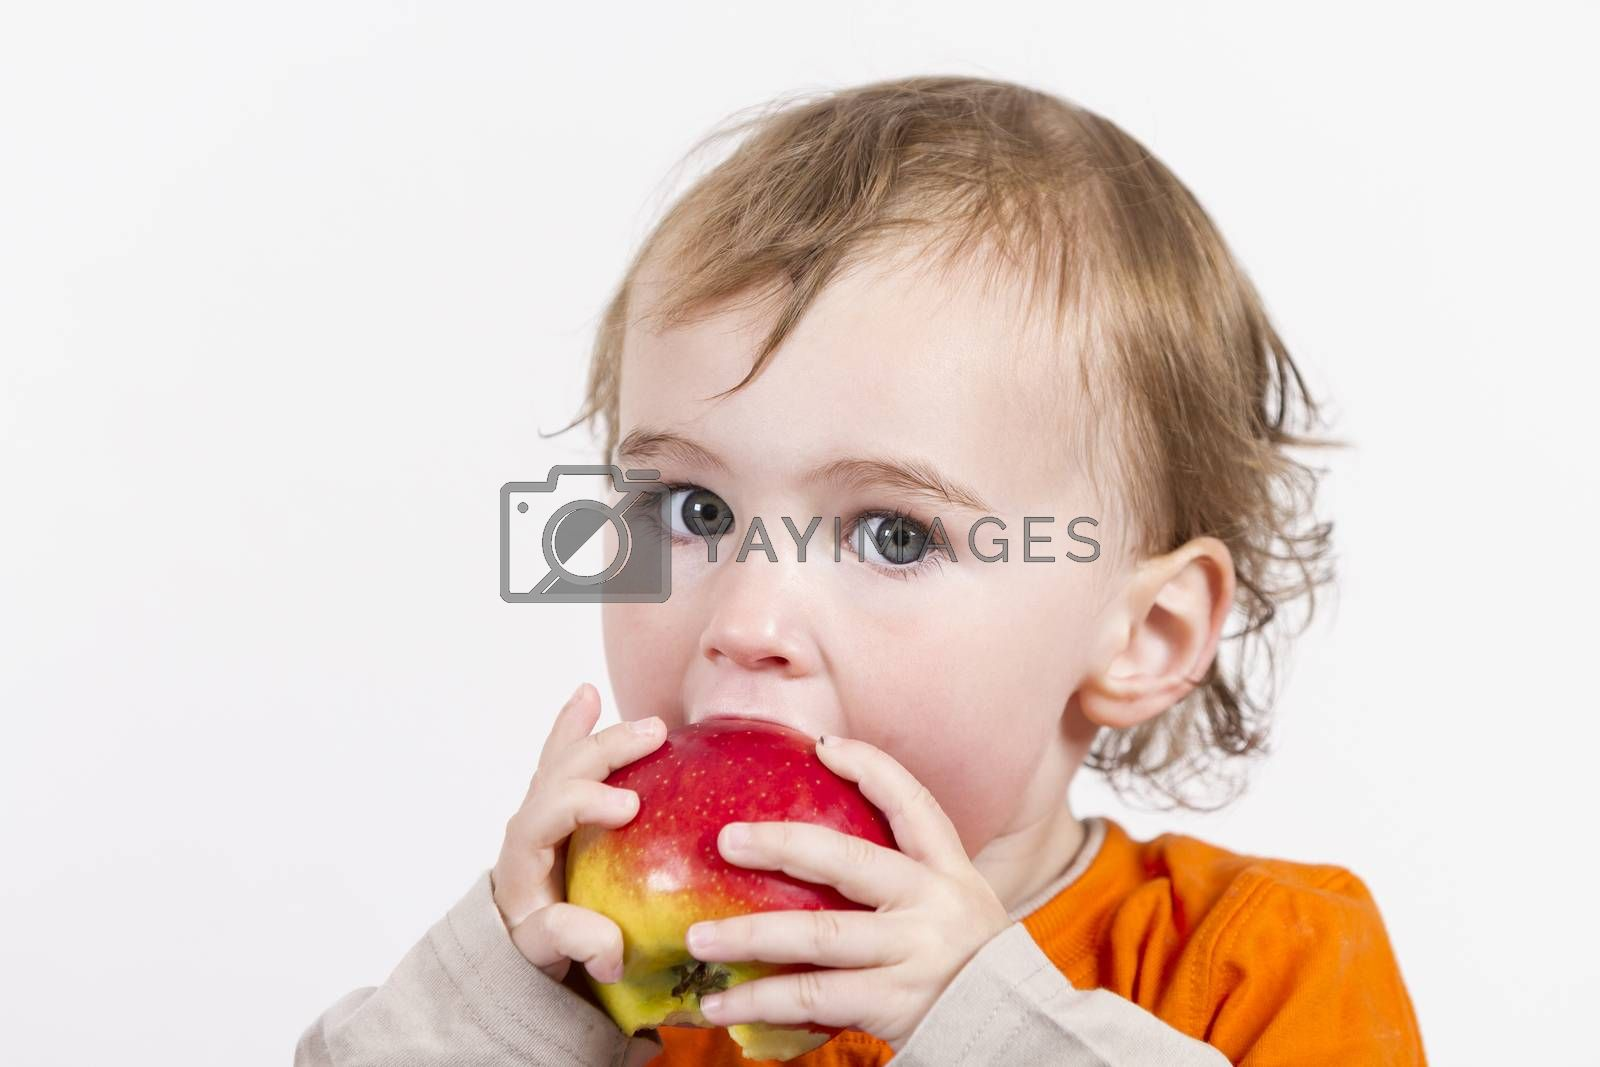 young child holding and eating red apple. horizontal image